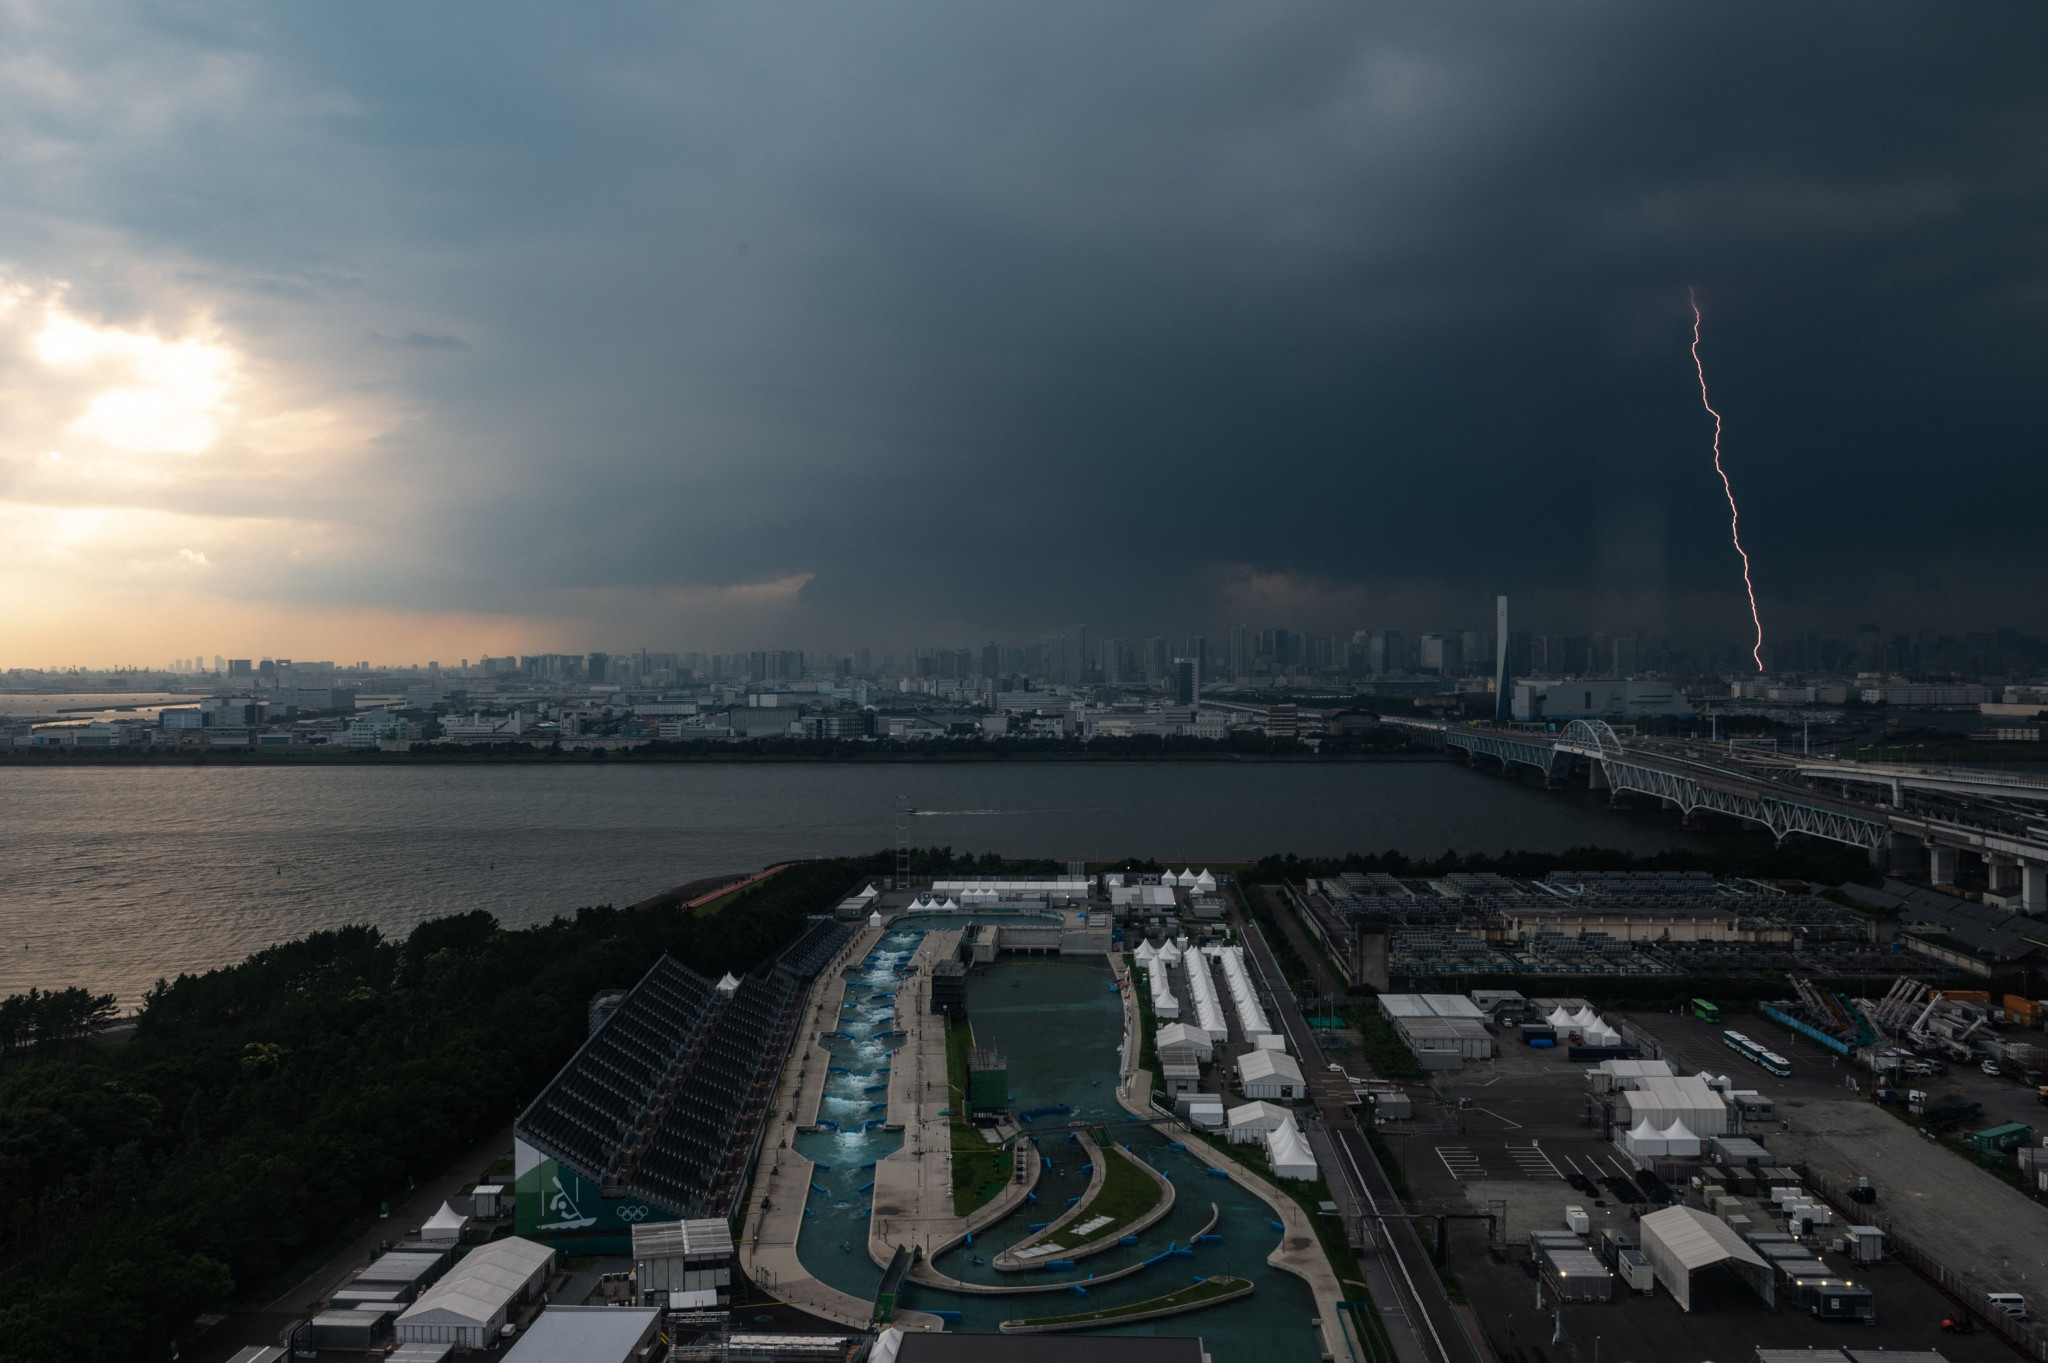 Tokyo 2020 competitions will be held behind closed doors due to the restrictions ©Getty Images